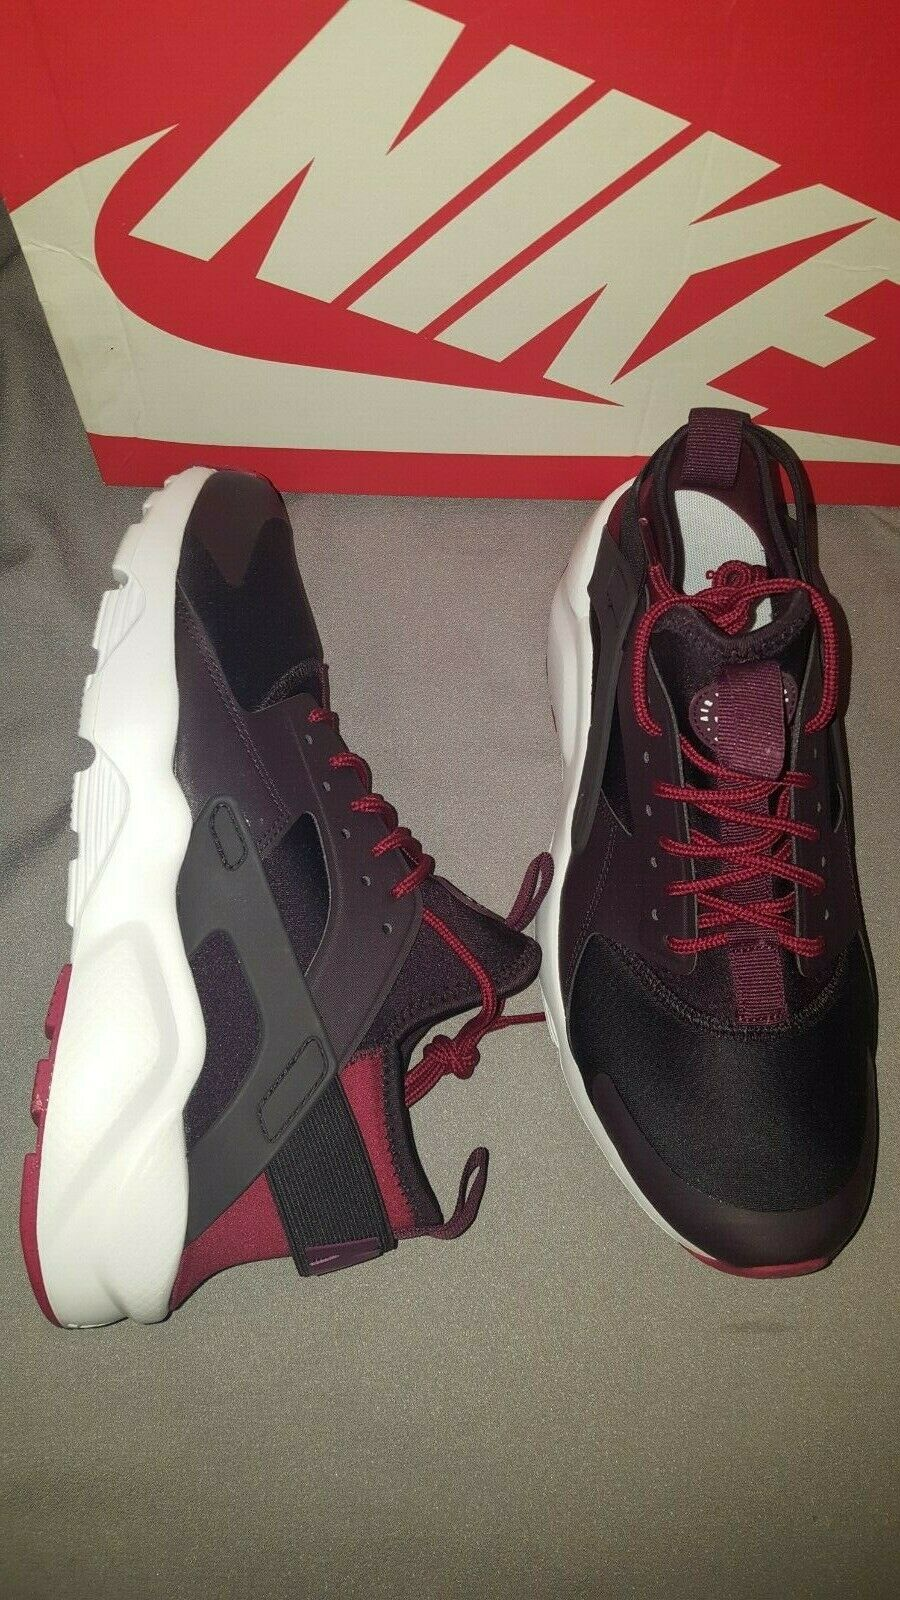 NIKE AIR HUARACHE RUN ULTRA WINE BORDEAUX rot 819685 605 MENS schuhe SZ 9 NEW